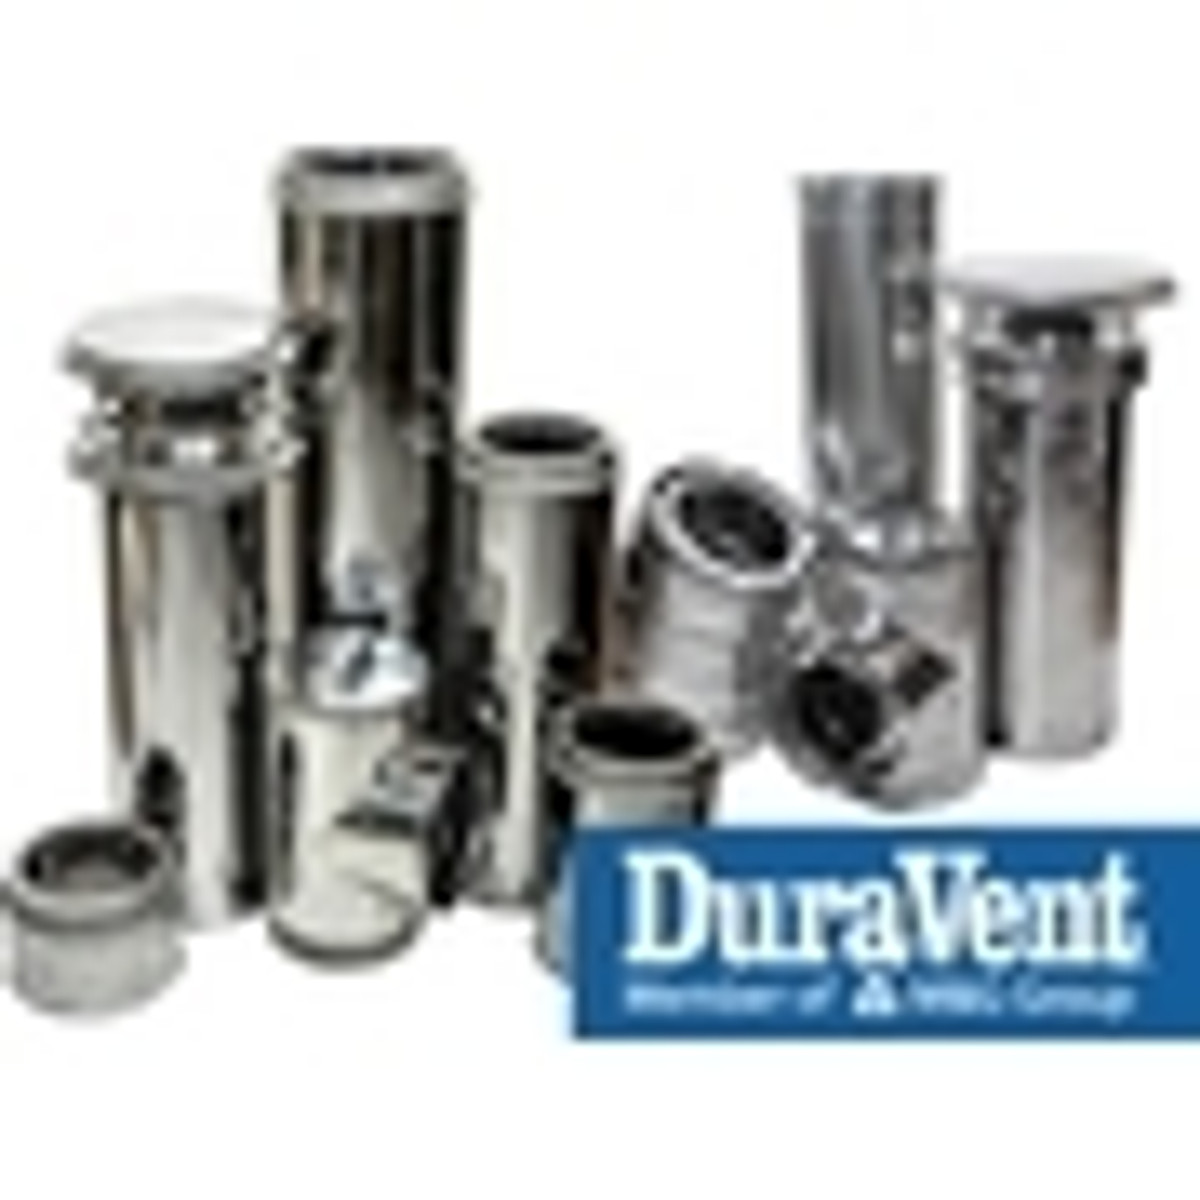 10'' DuraTech Chimney Pipe